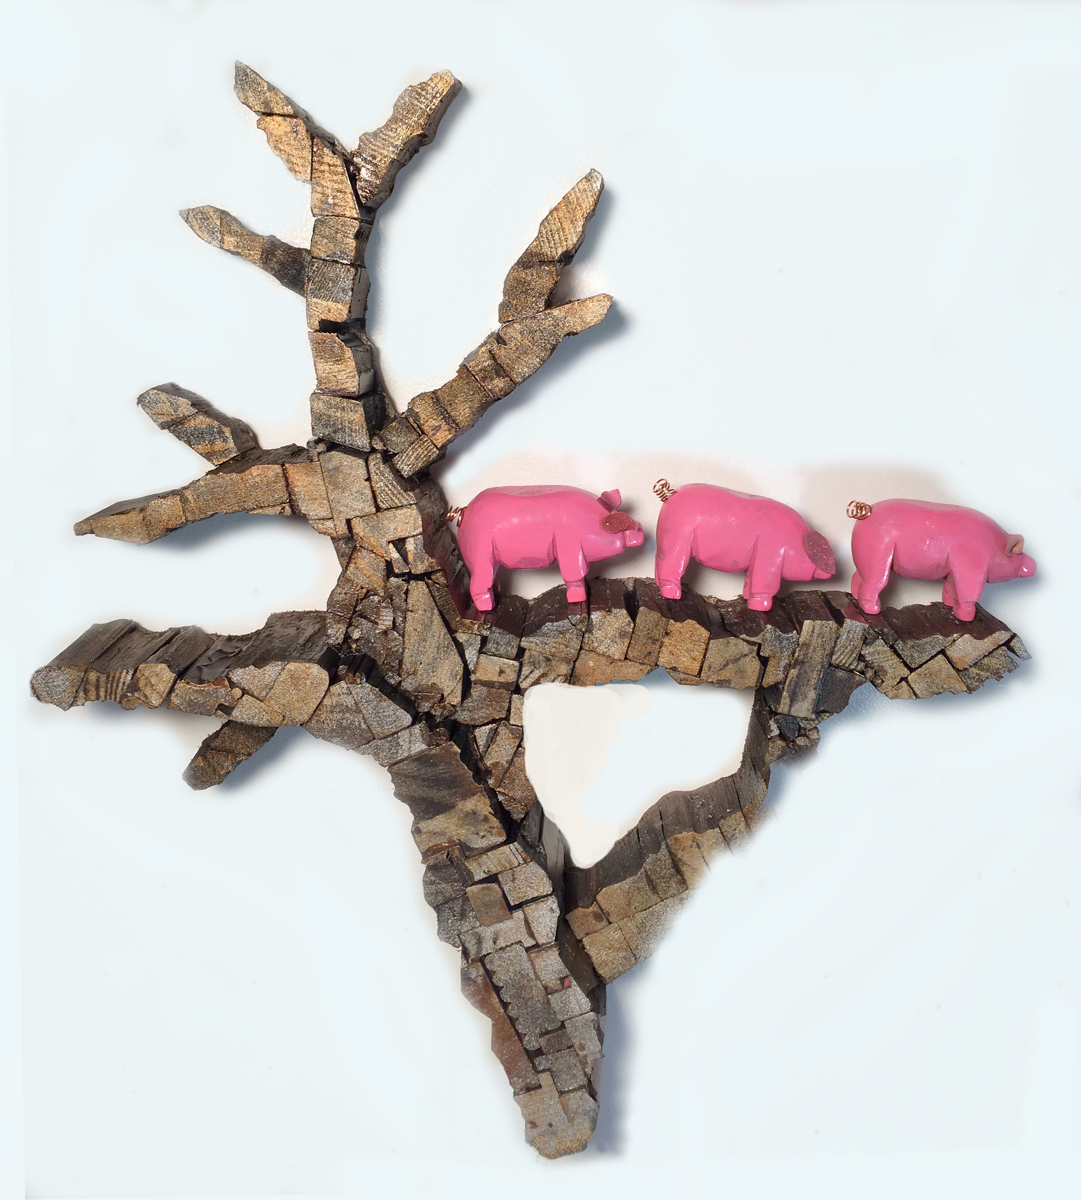 Three Little Pigs Out on a Limb (large view)